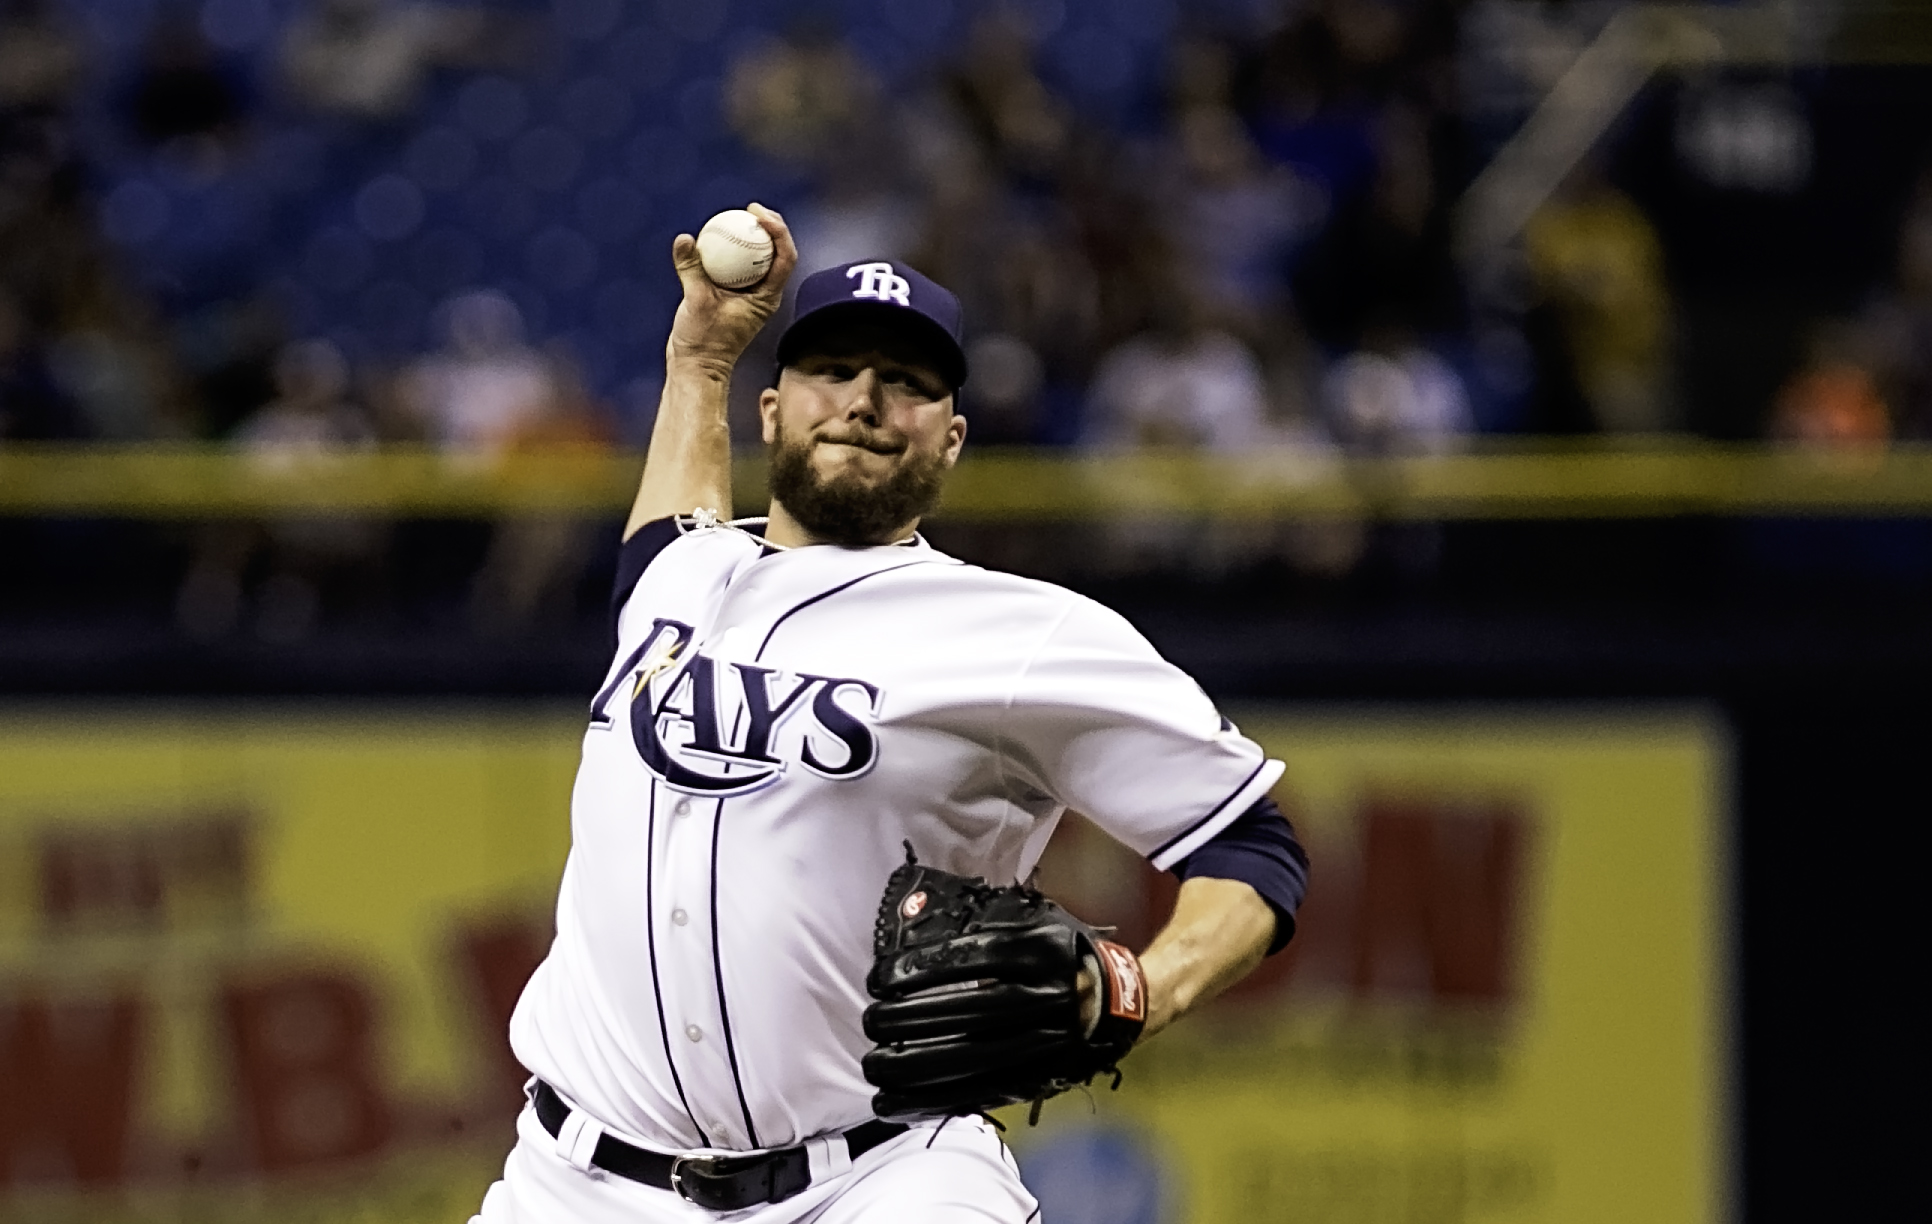 In Tommy Hunter's last 17 appearances, 16 have been scoreless./CARMEN MANDATO